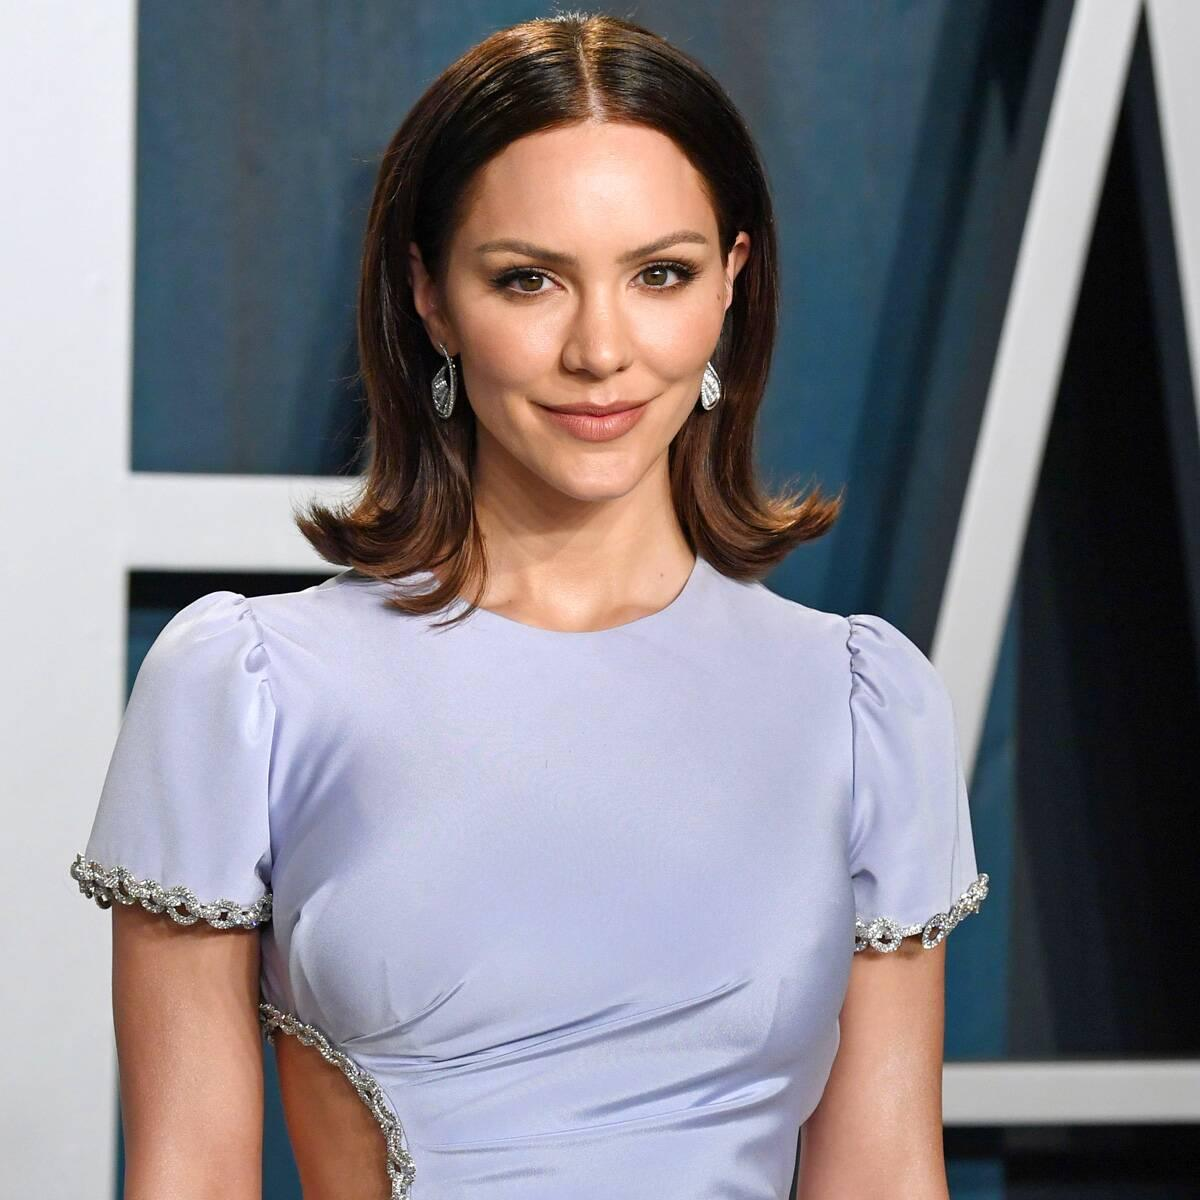 Katharine McPhee Shares Sweet Photo of Her and David Foster's Baby Boy - Yahoo Entertainment